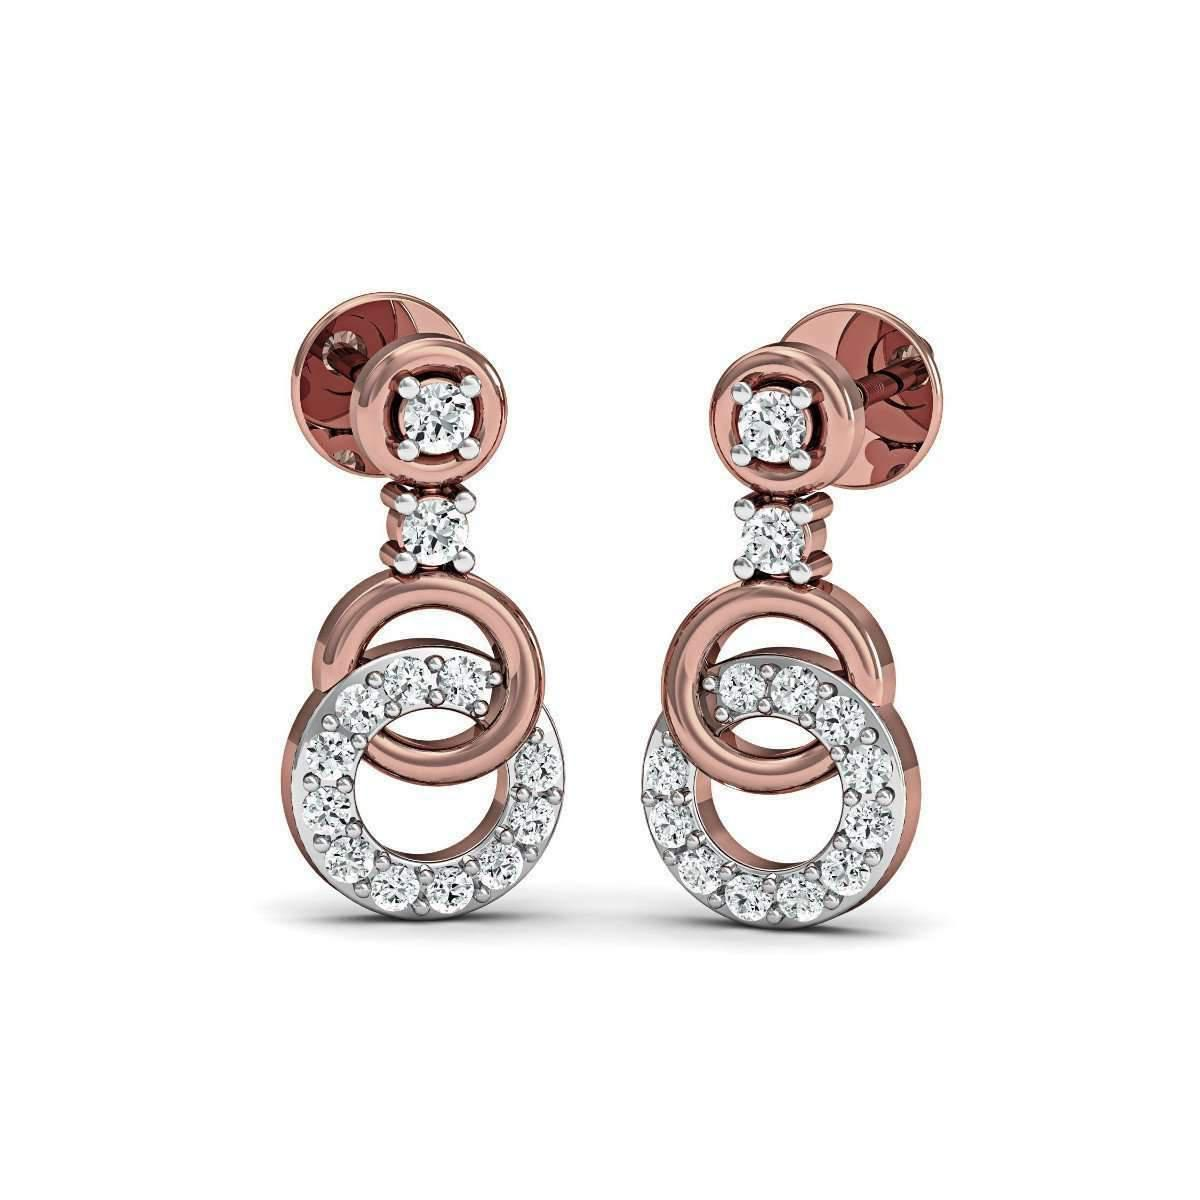 Diamoire Jewels Sure-fire Polished 18Kt Rose Gold Diamond Stud Earrings EbYUdKw0